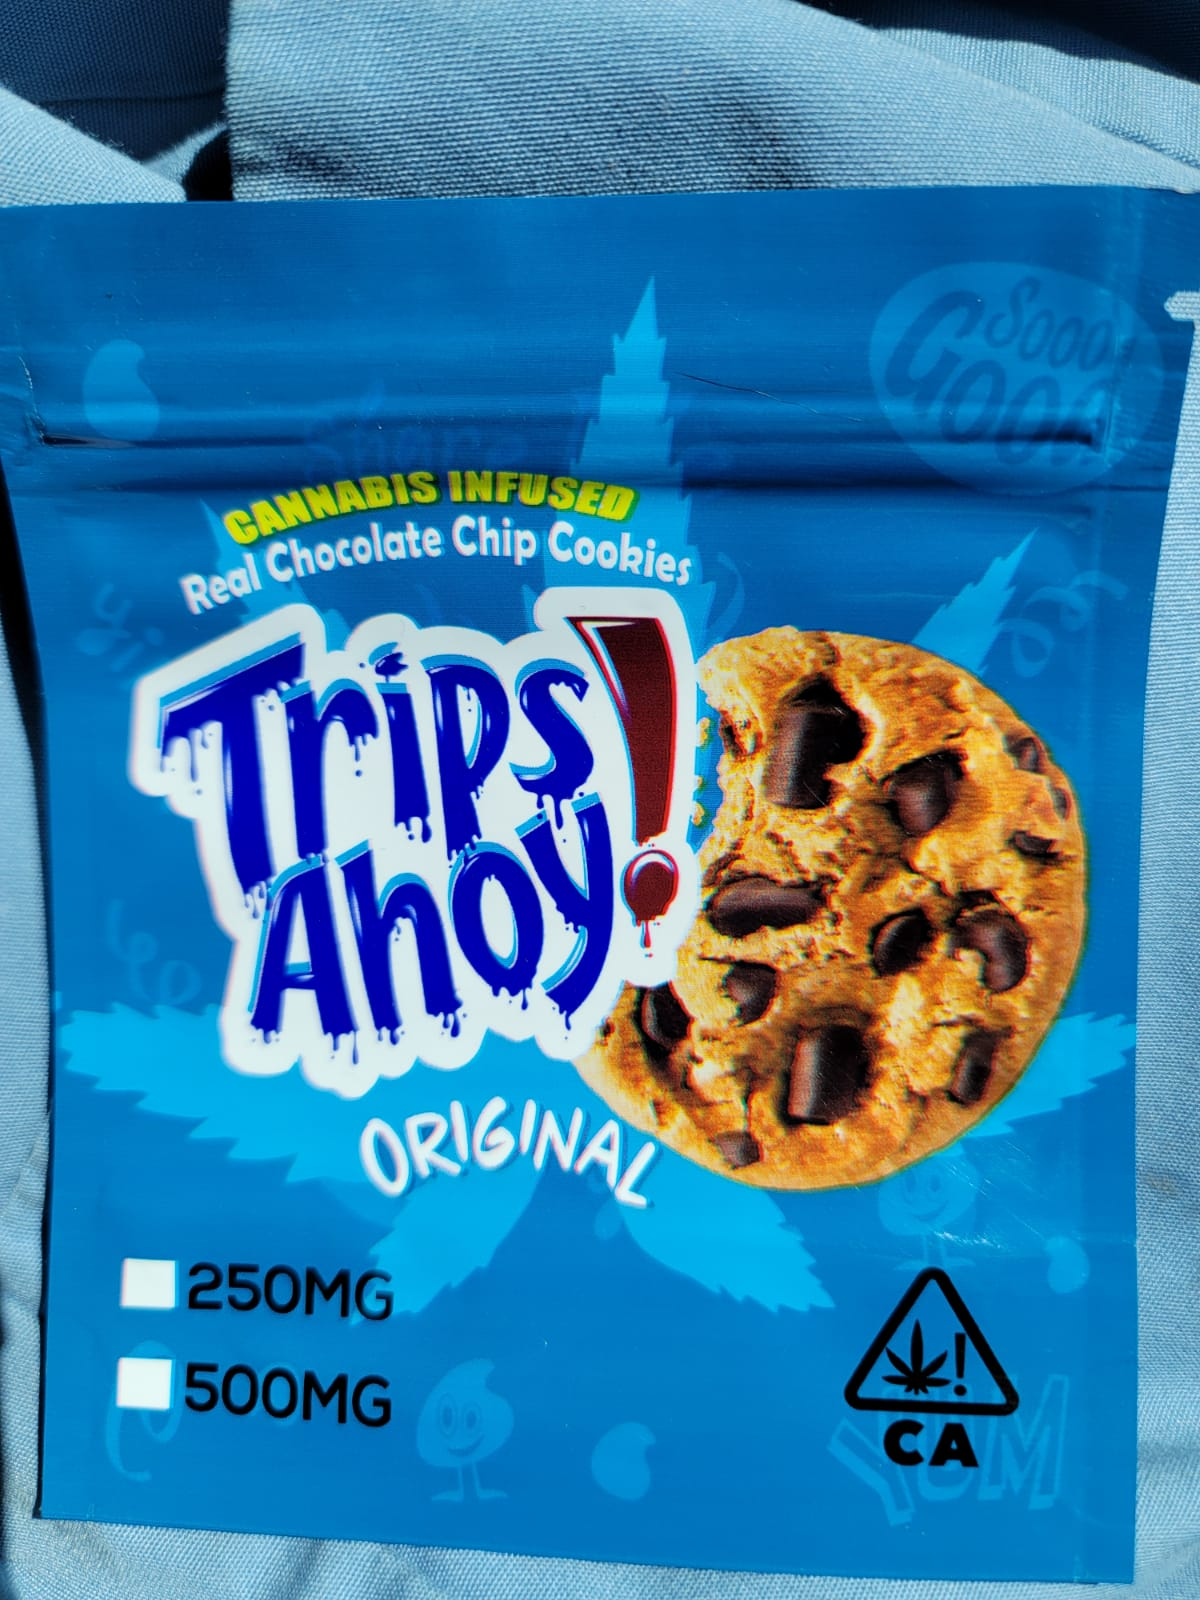 Trips Ahoy-Chocolate Chip Cookies